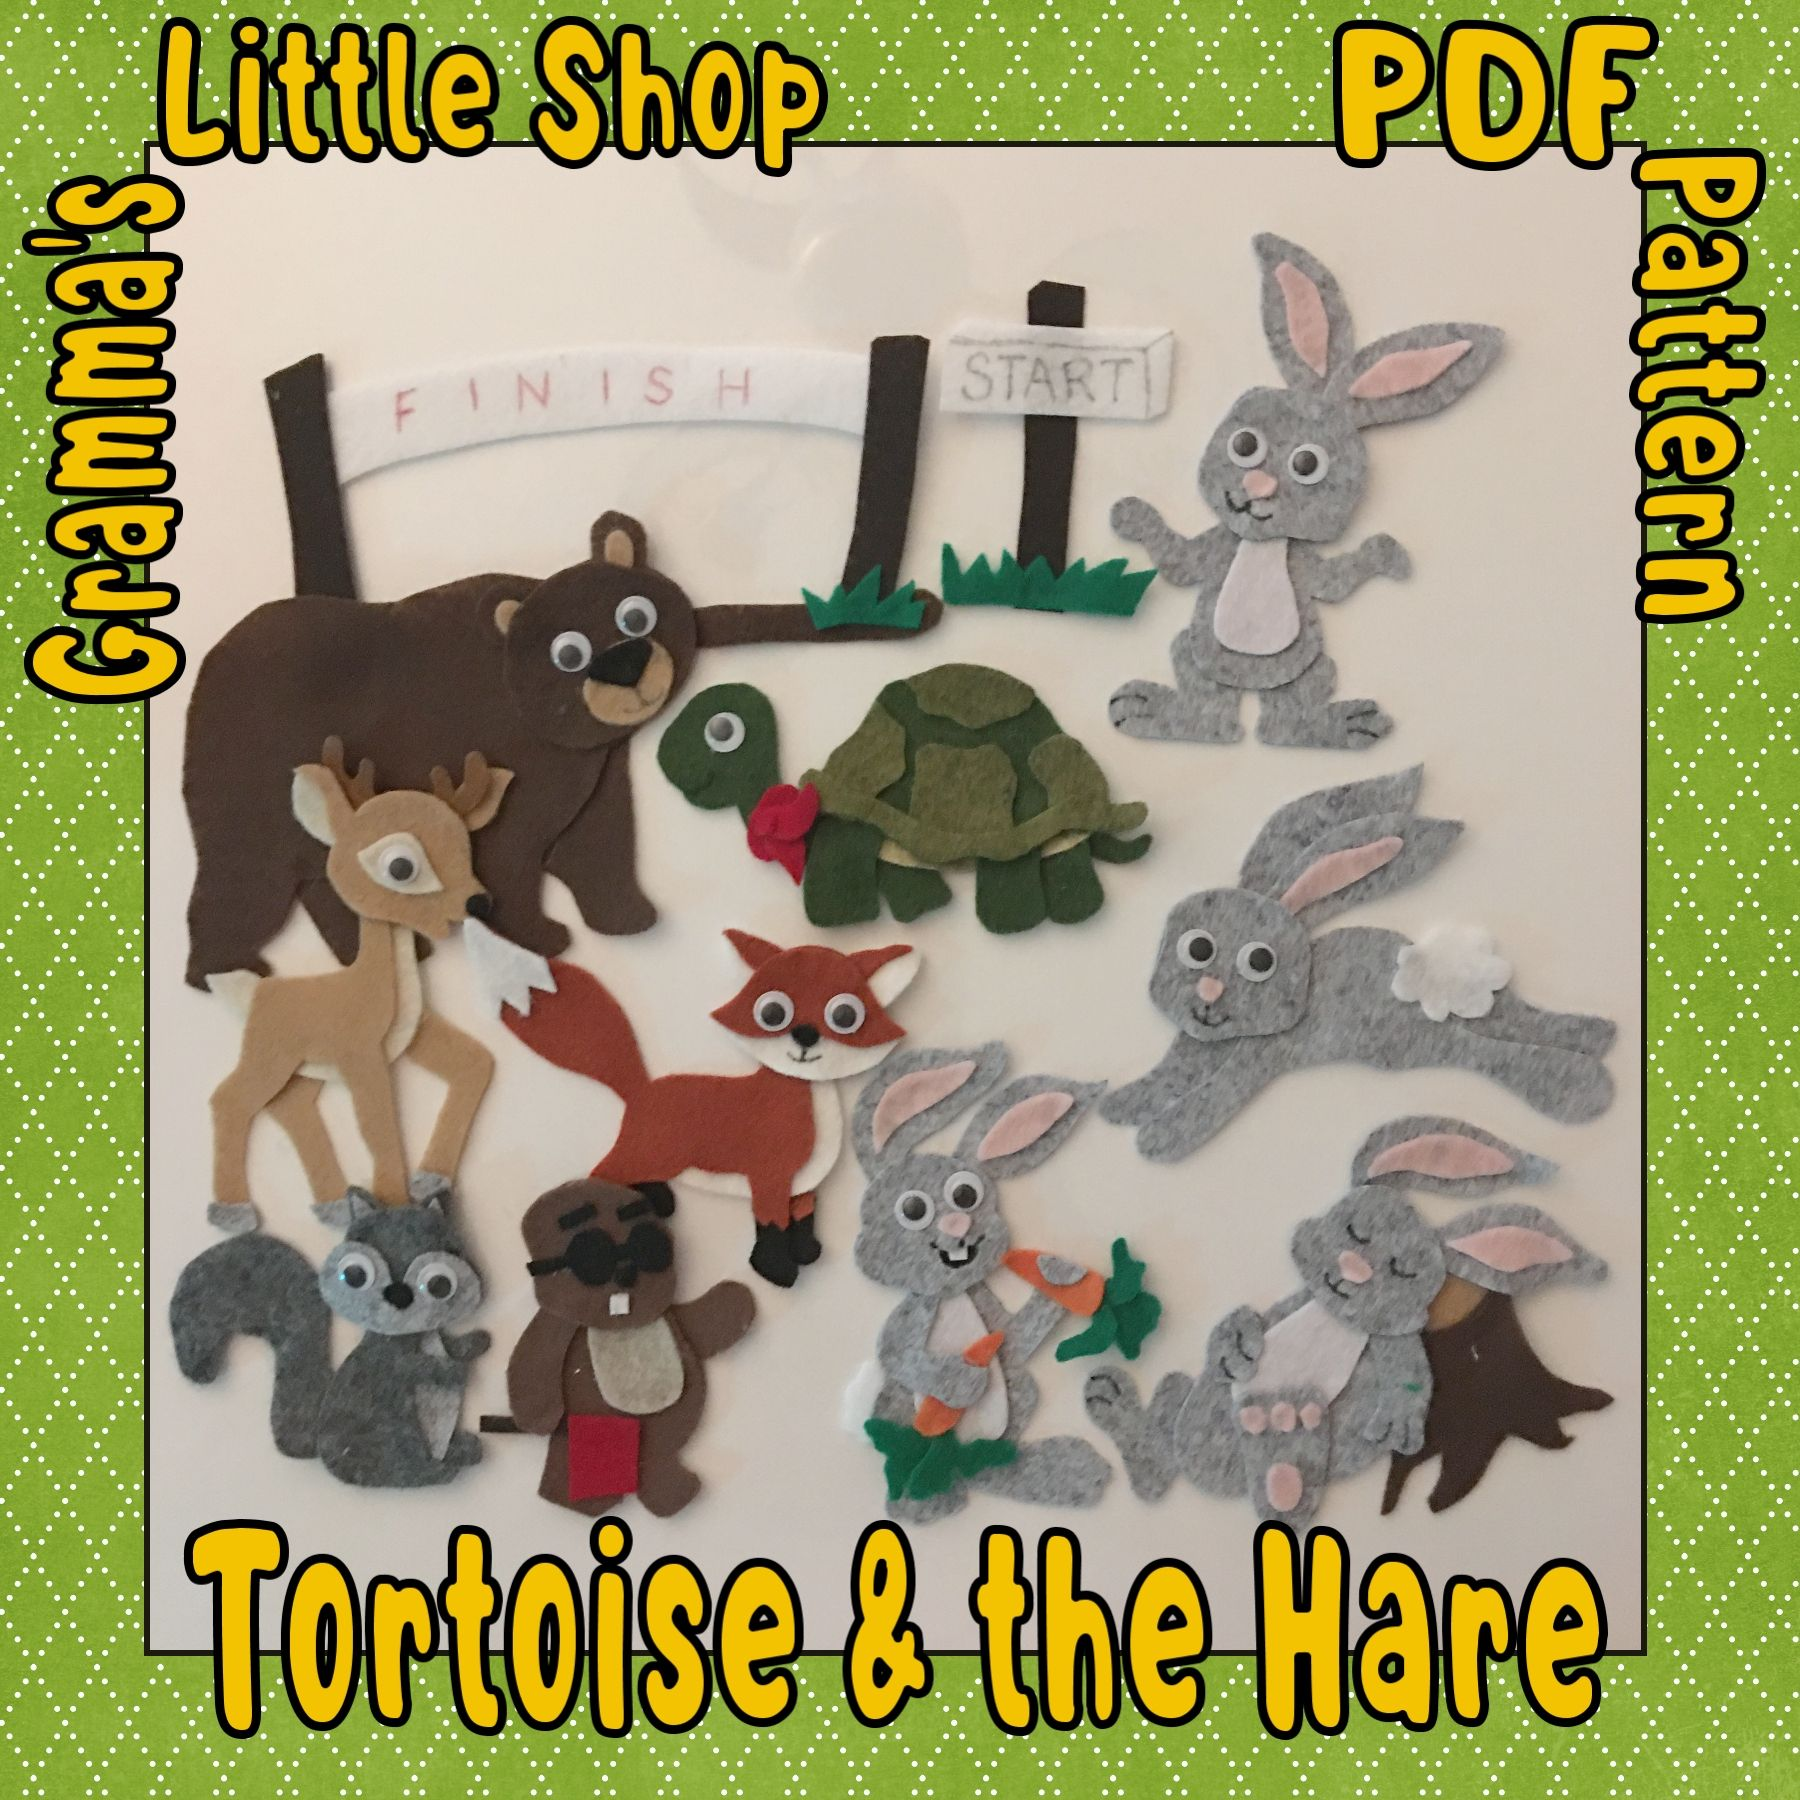 The Tortoise And The Hare Pdf